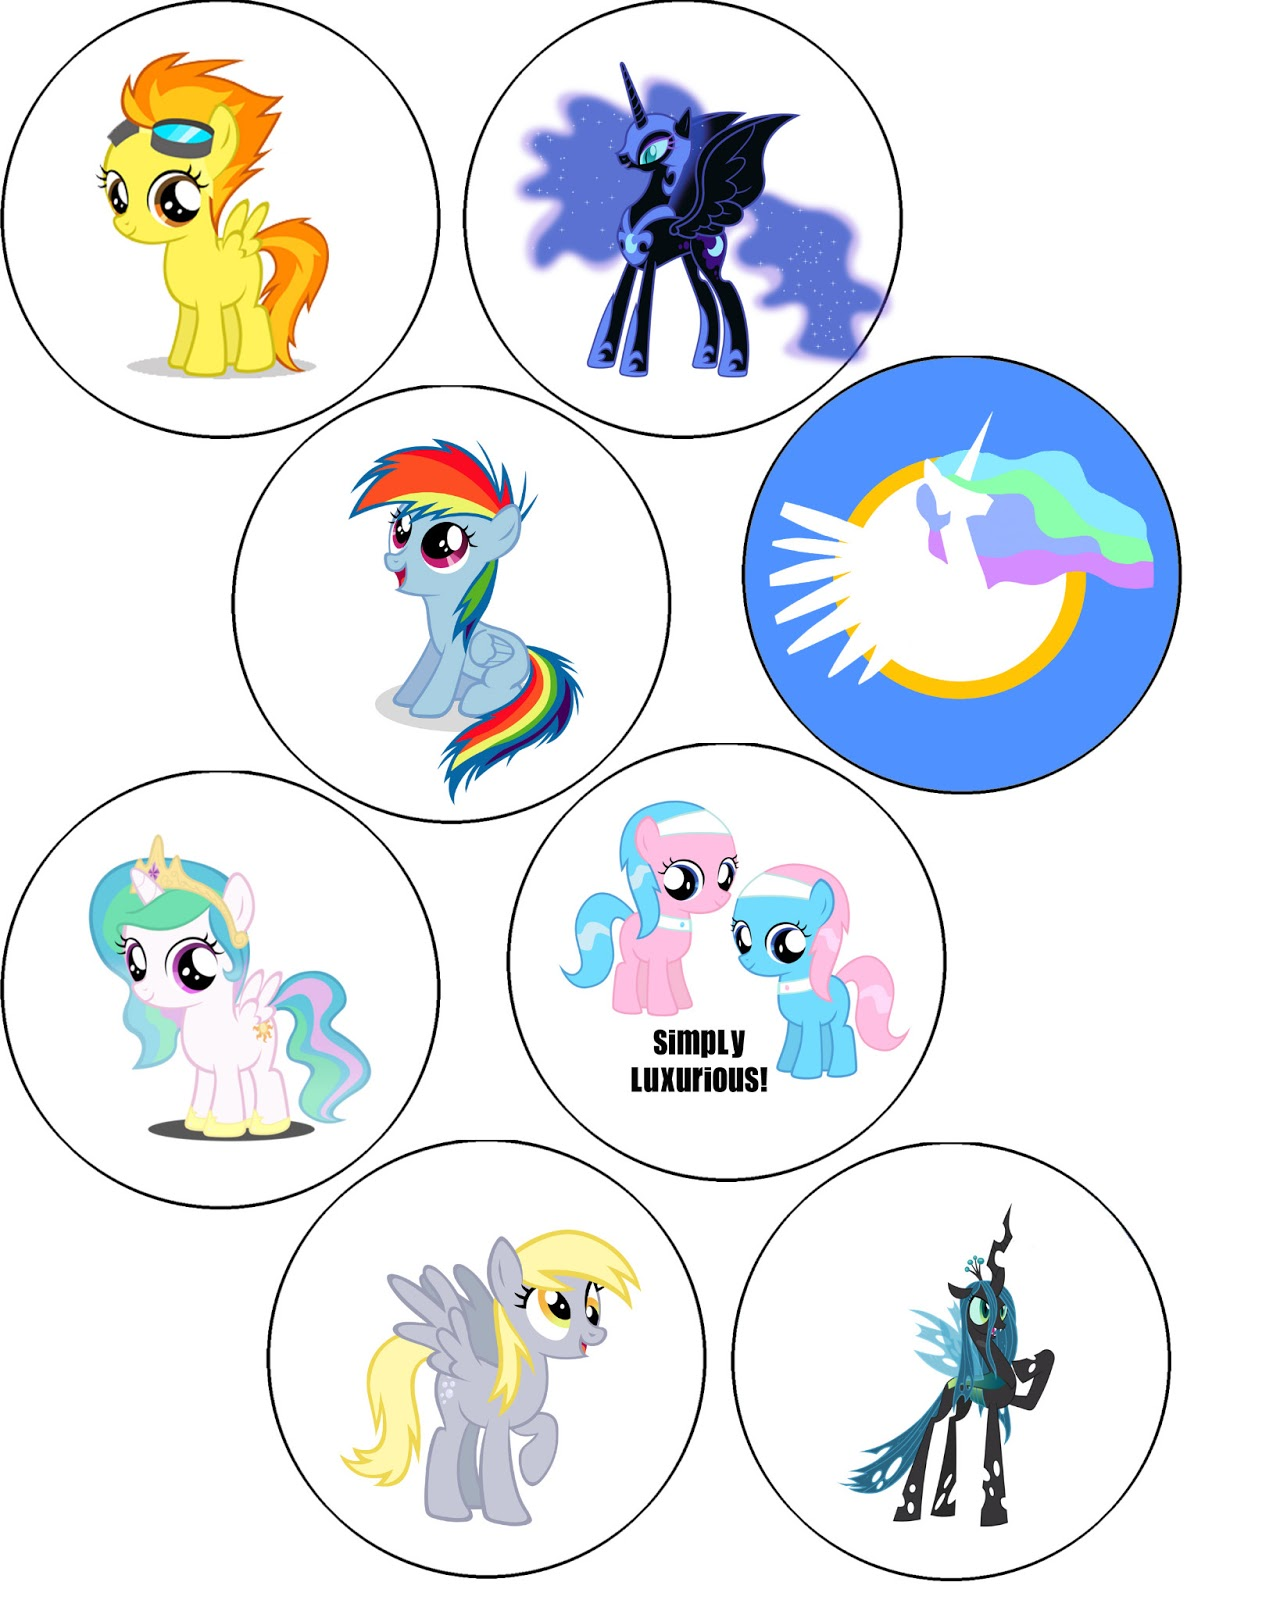 My little pony coloring pages nightmare moon - My Little Pony G4 Coloring Pages My Little Pony Friendship Is Magic Coloring Pages Princess